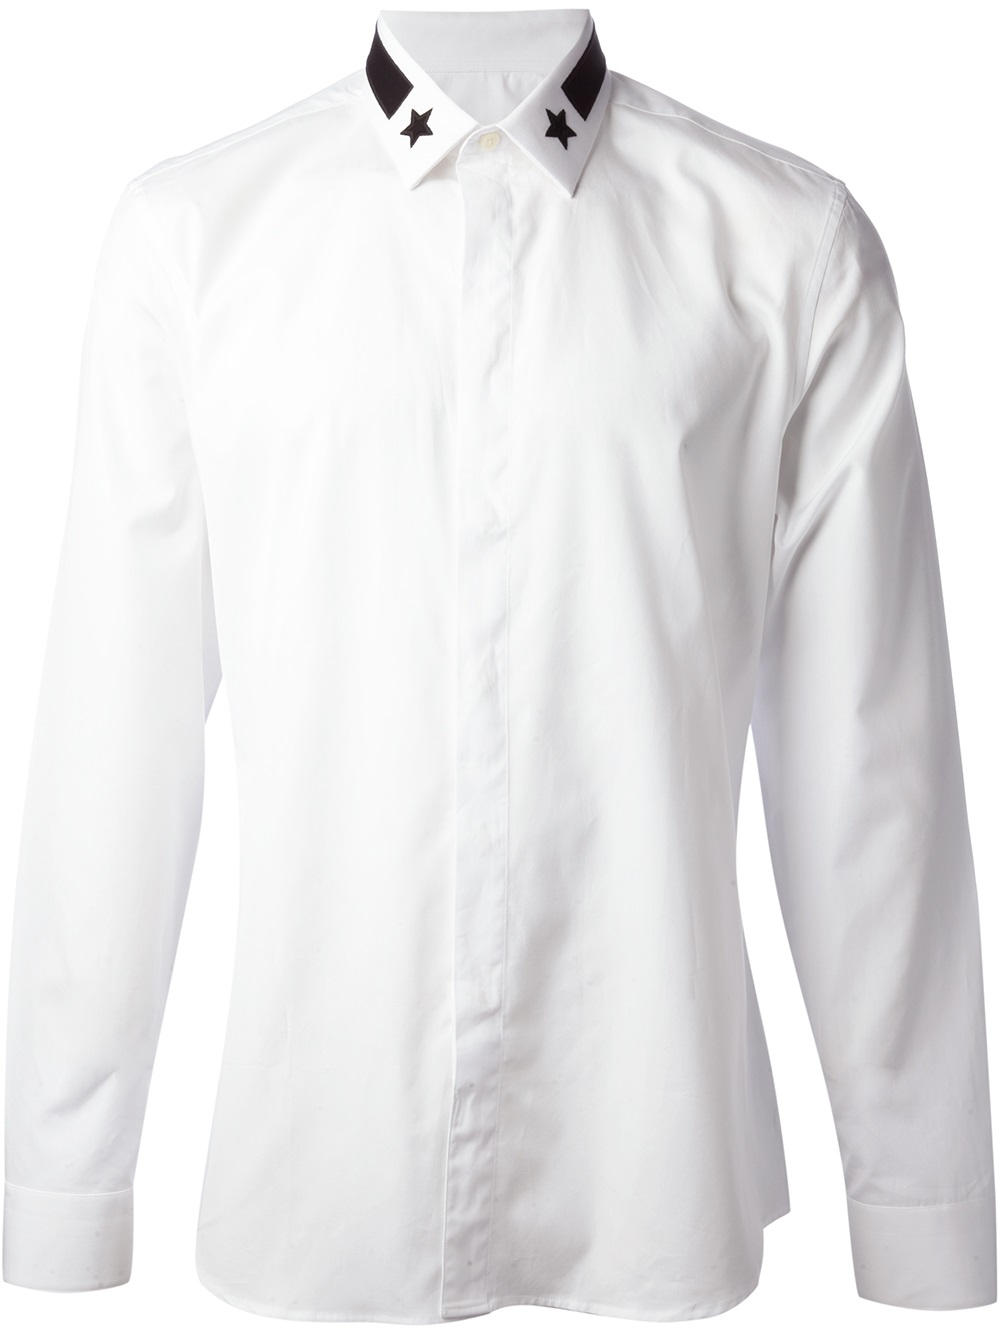 Givenchy Star Collar Shirt In White For Men Lyst